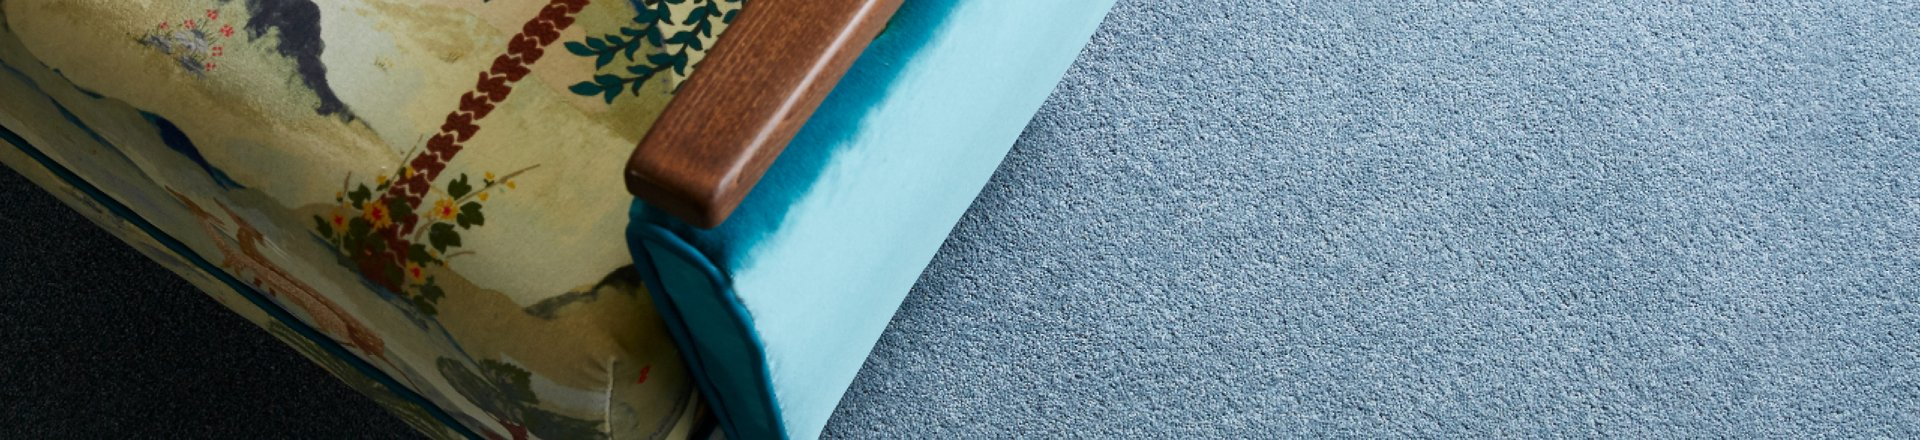 Carpet buying guide axminster carpets for Carpet buying guide